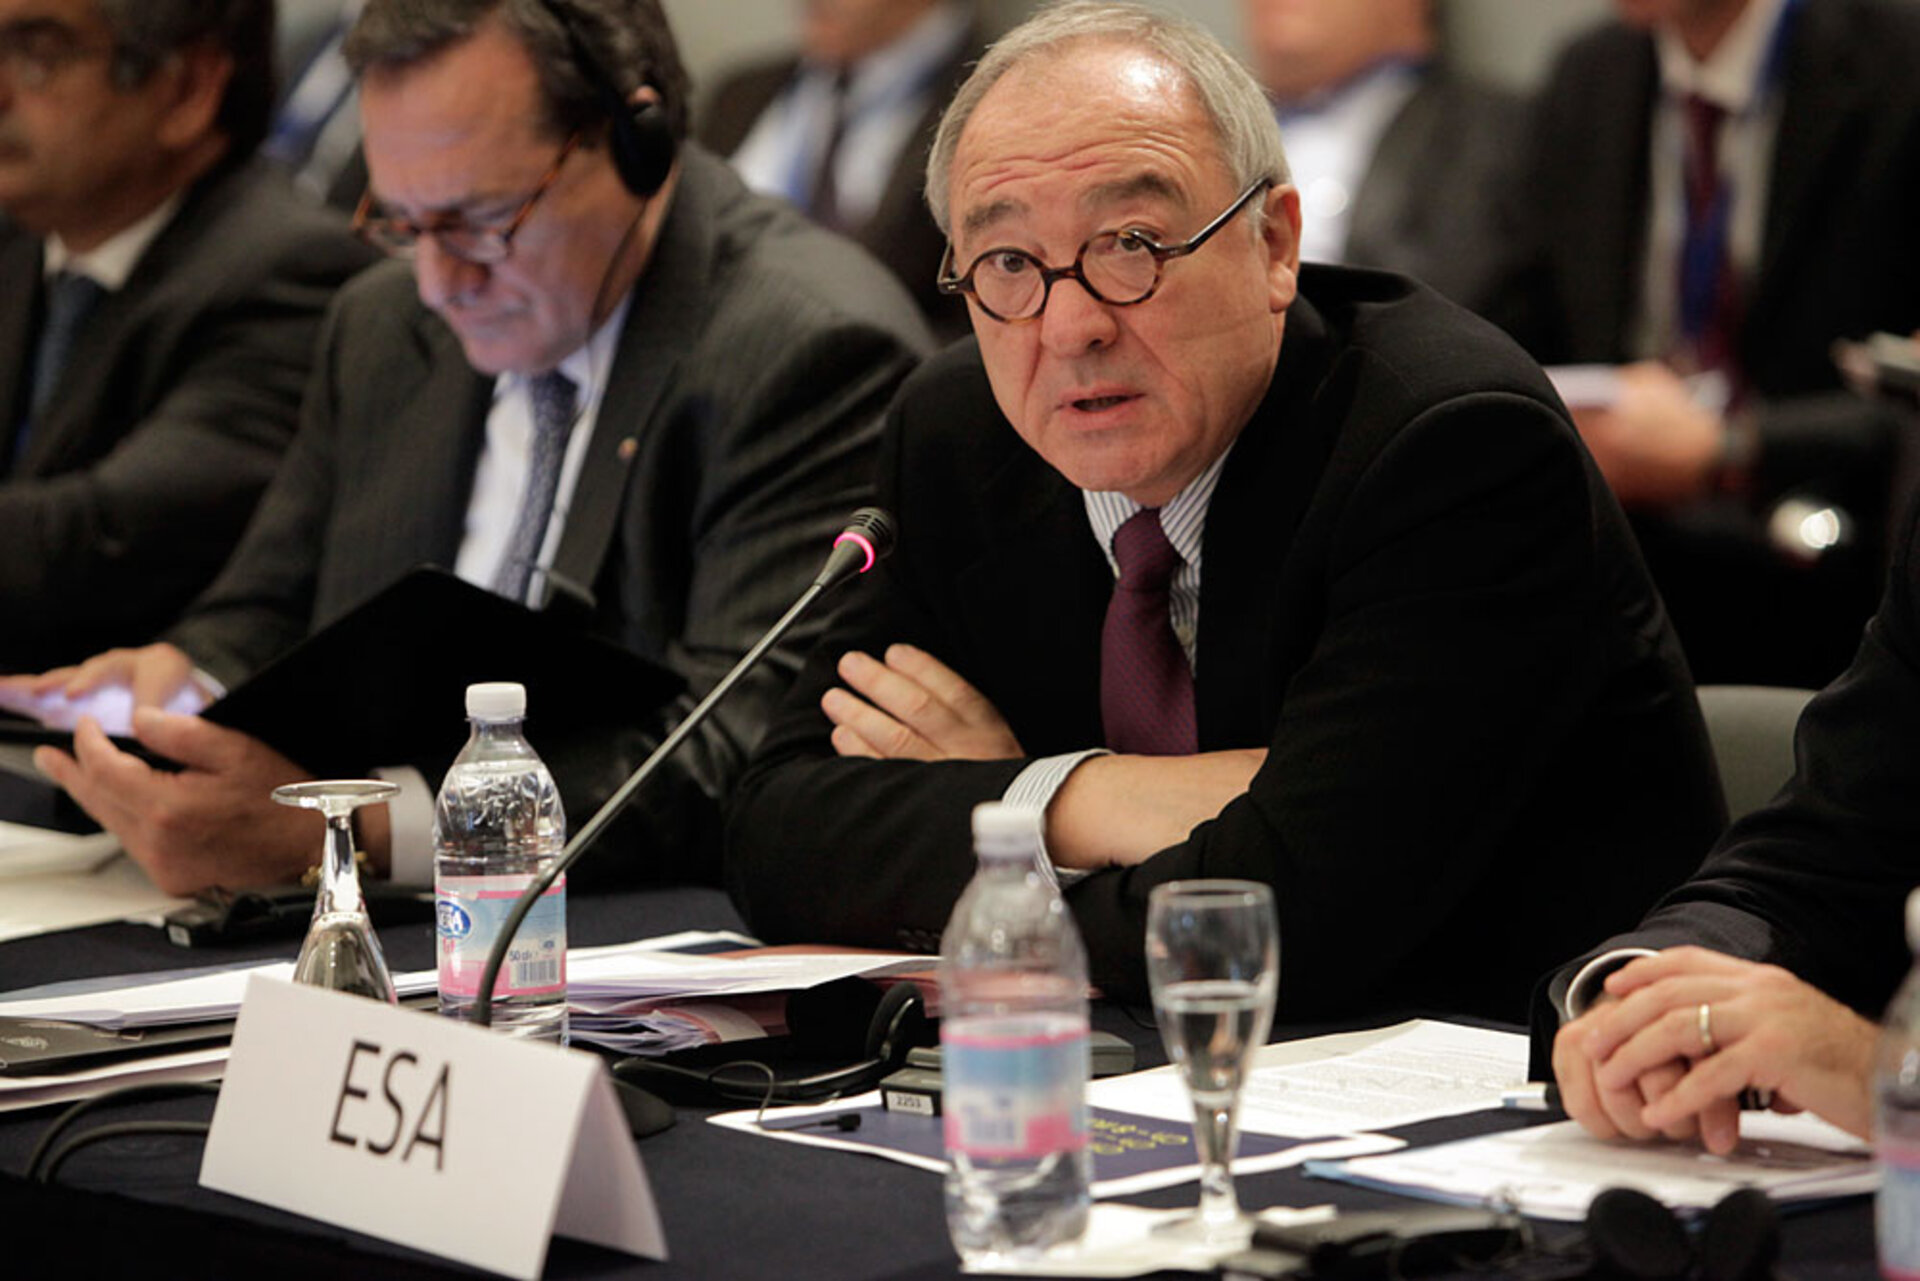 Jean-Jacques Dordain, ESA Director General, during the International rendezvous in Lucca on global space exploration